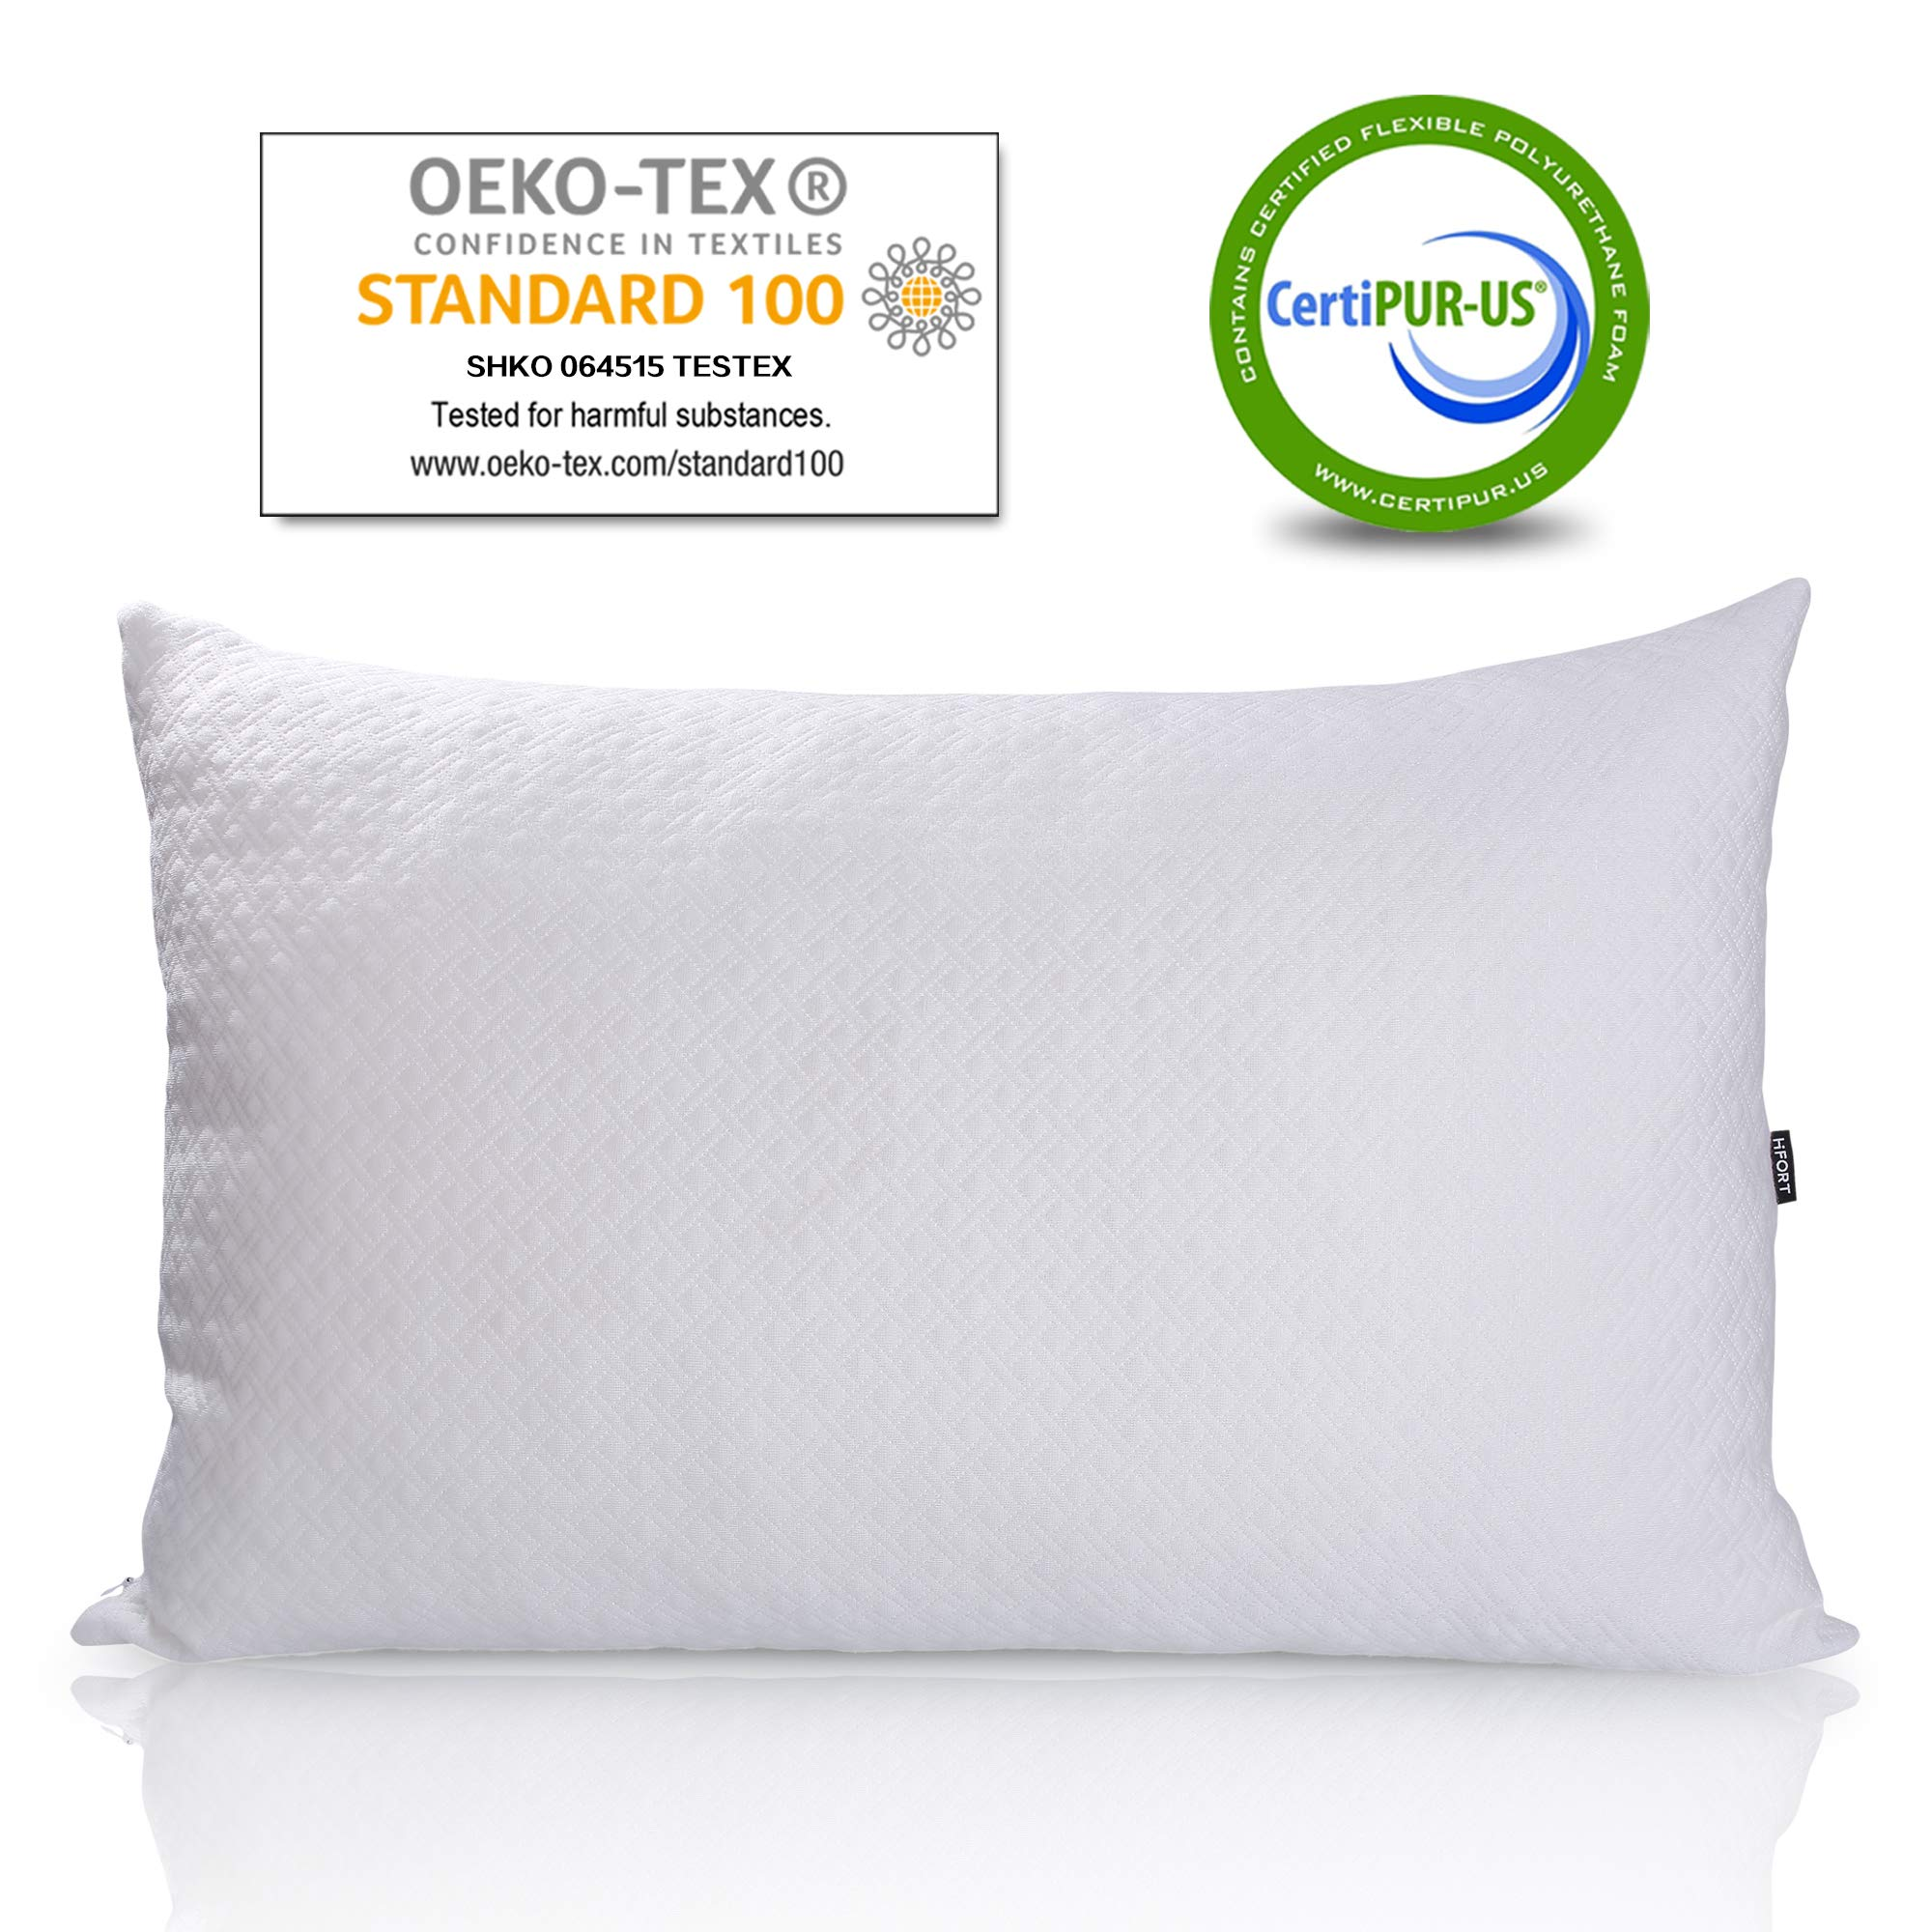 HIFORT Shredded Memory Foam Pillow Firm Queen Bed Pillows for Sleeping with Hypoallergenic Removable Bamboo Cover Hotel Quality Adjustable Loft for Stomach Back and Side Sleeper